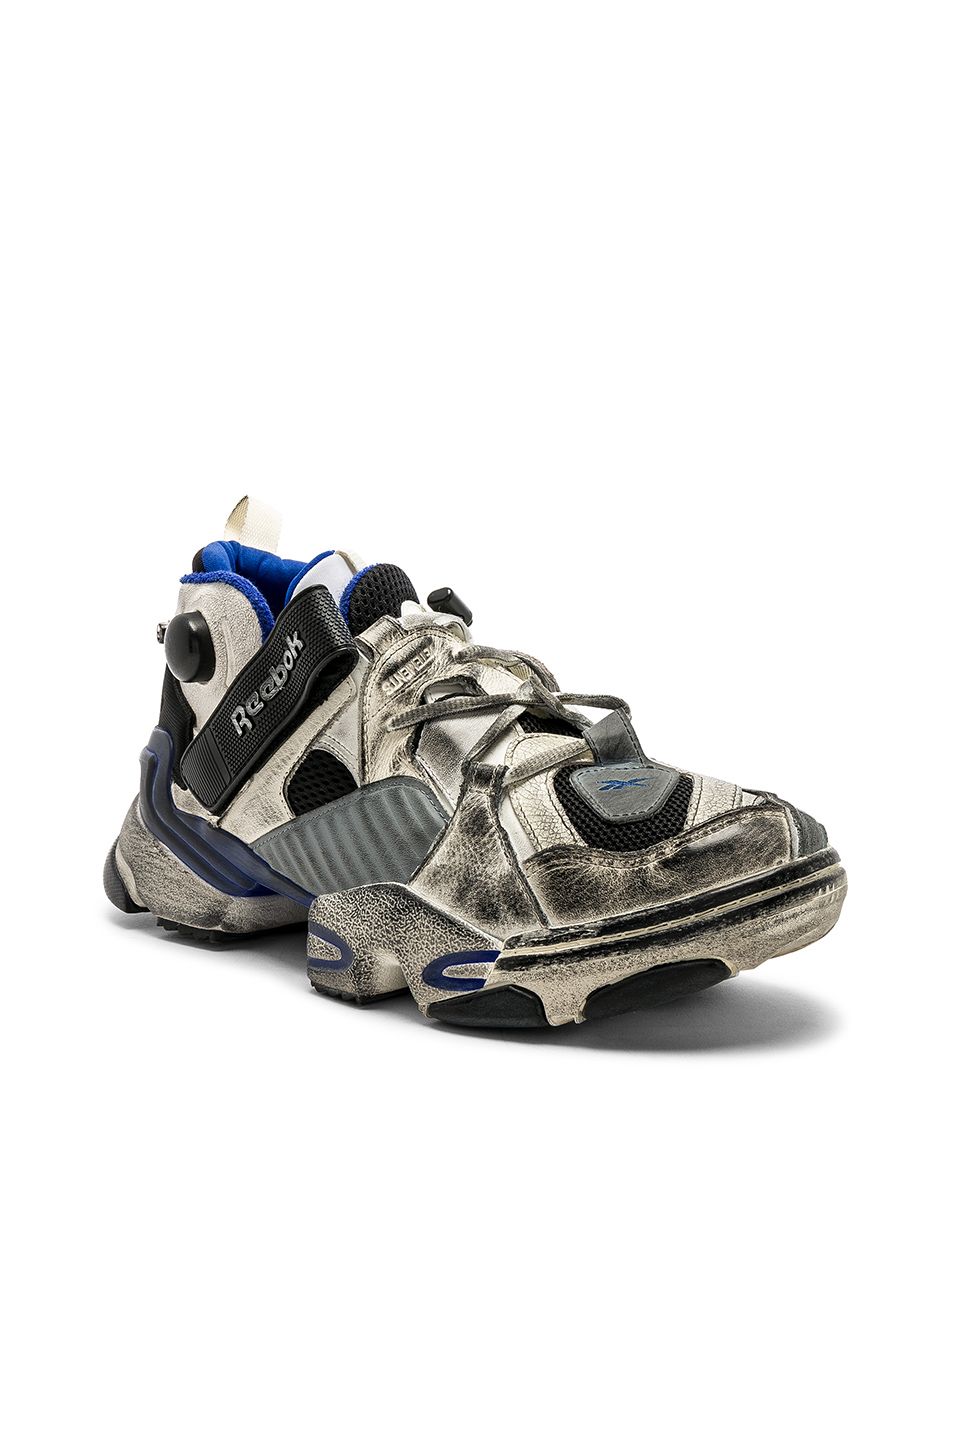 1e1aeffffb7754 Buy Original VETEMENTS x Reebok Genetically Modified Pumps at ...